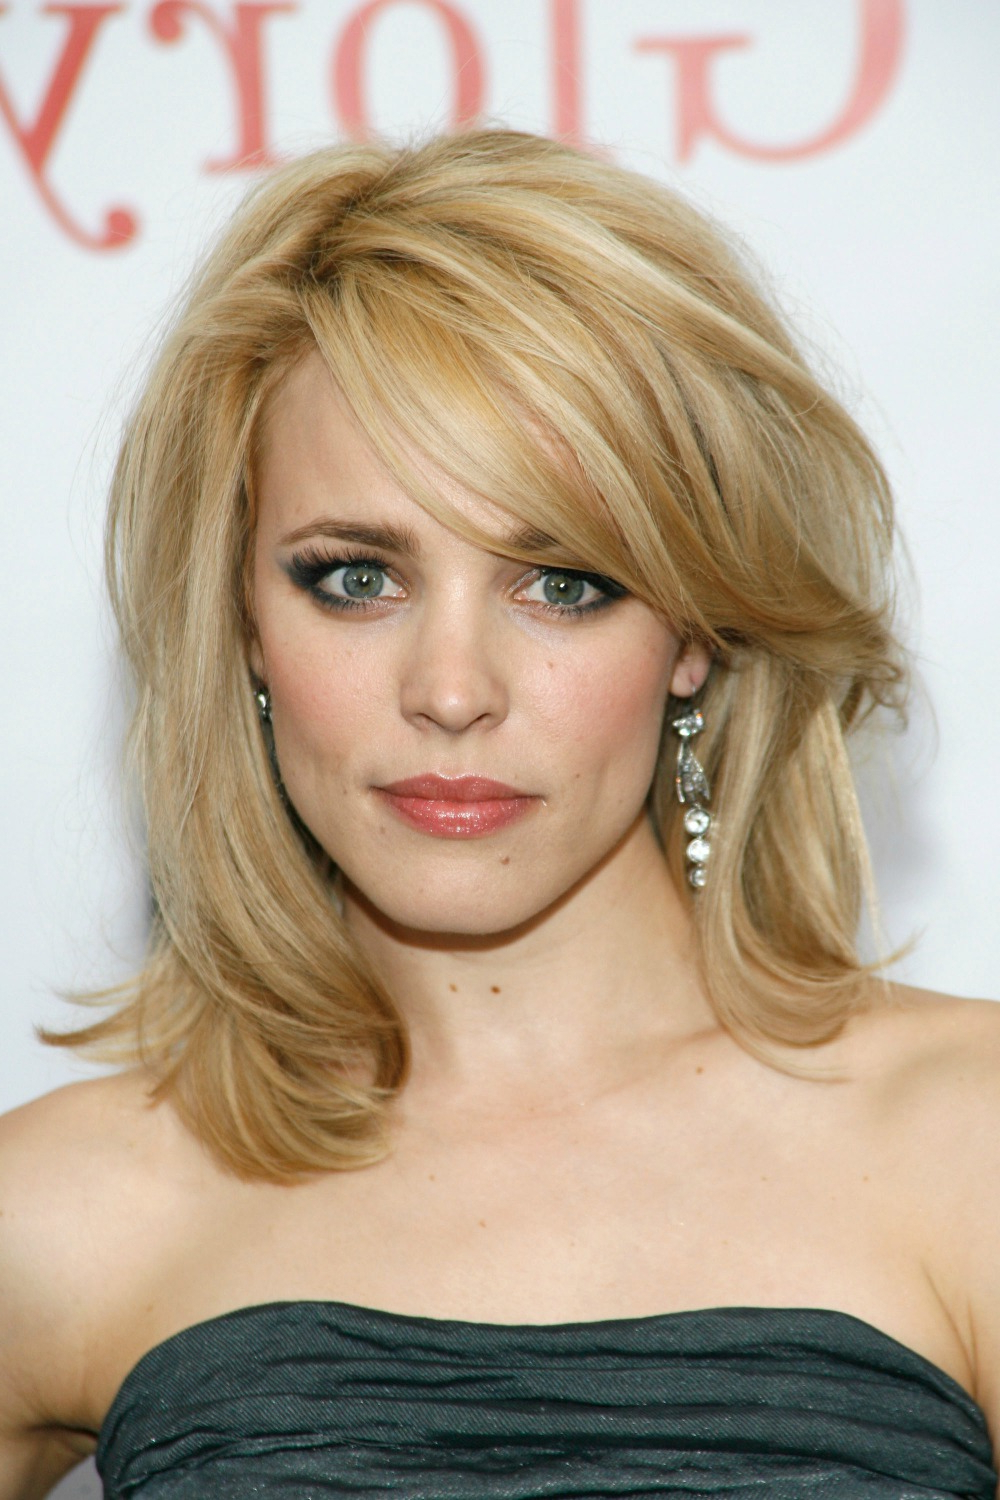 25 Medium Length Hairstyles You'll Want To Copy Now With Regard To Current Medium Hairstyles With Volume (View 2 of 20)